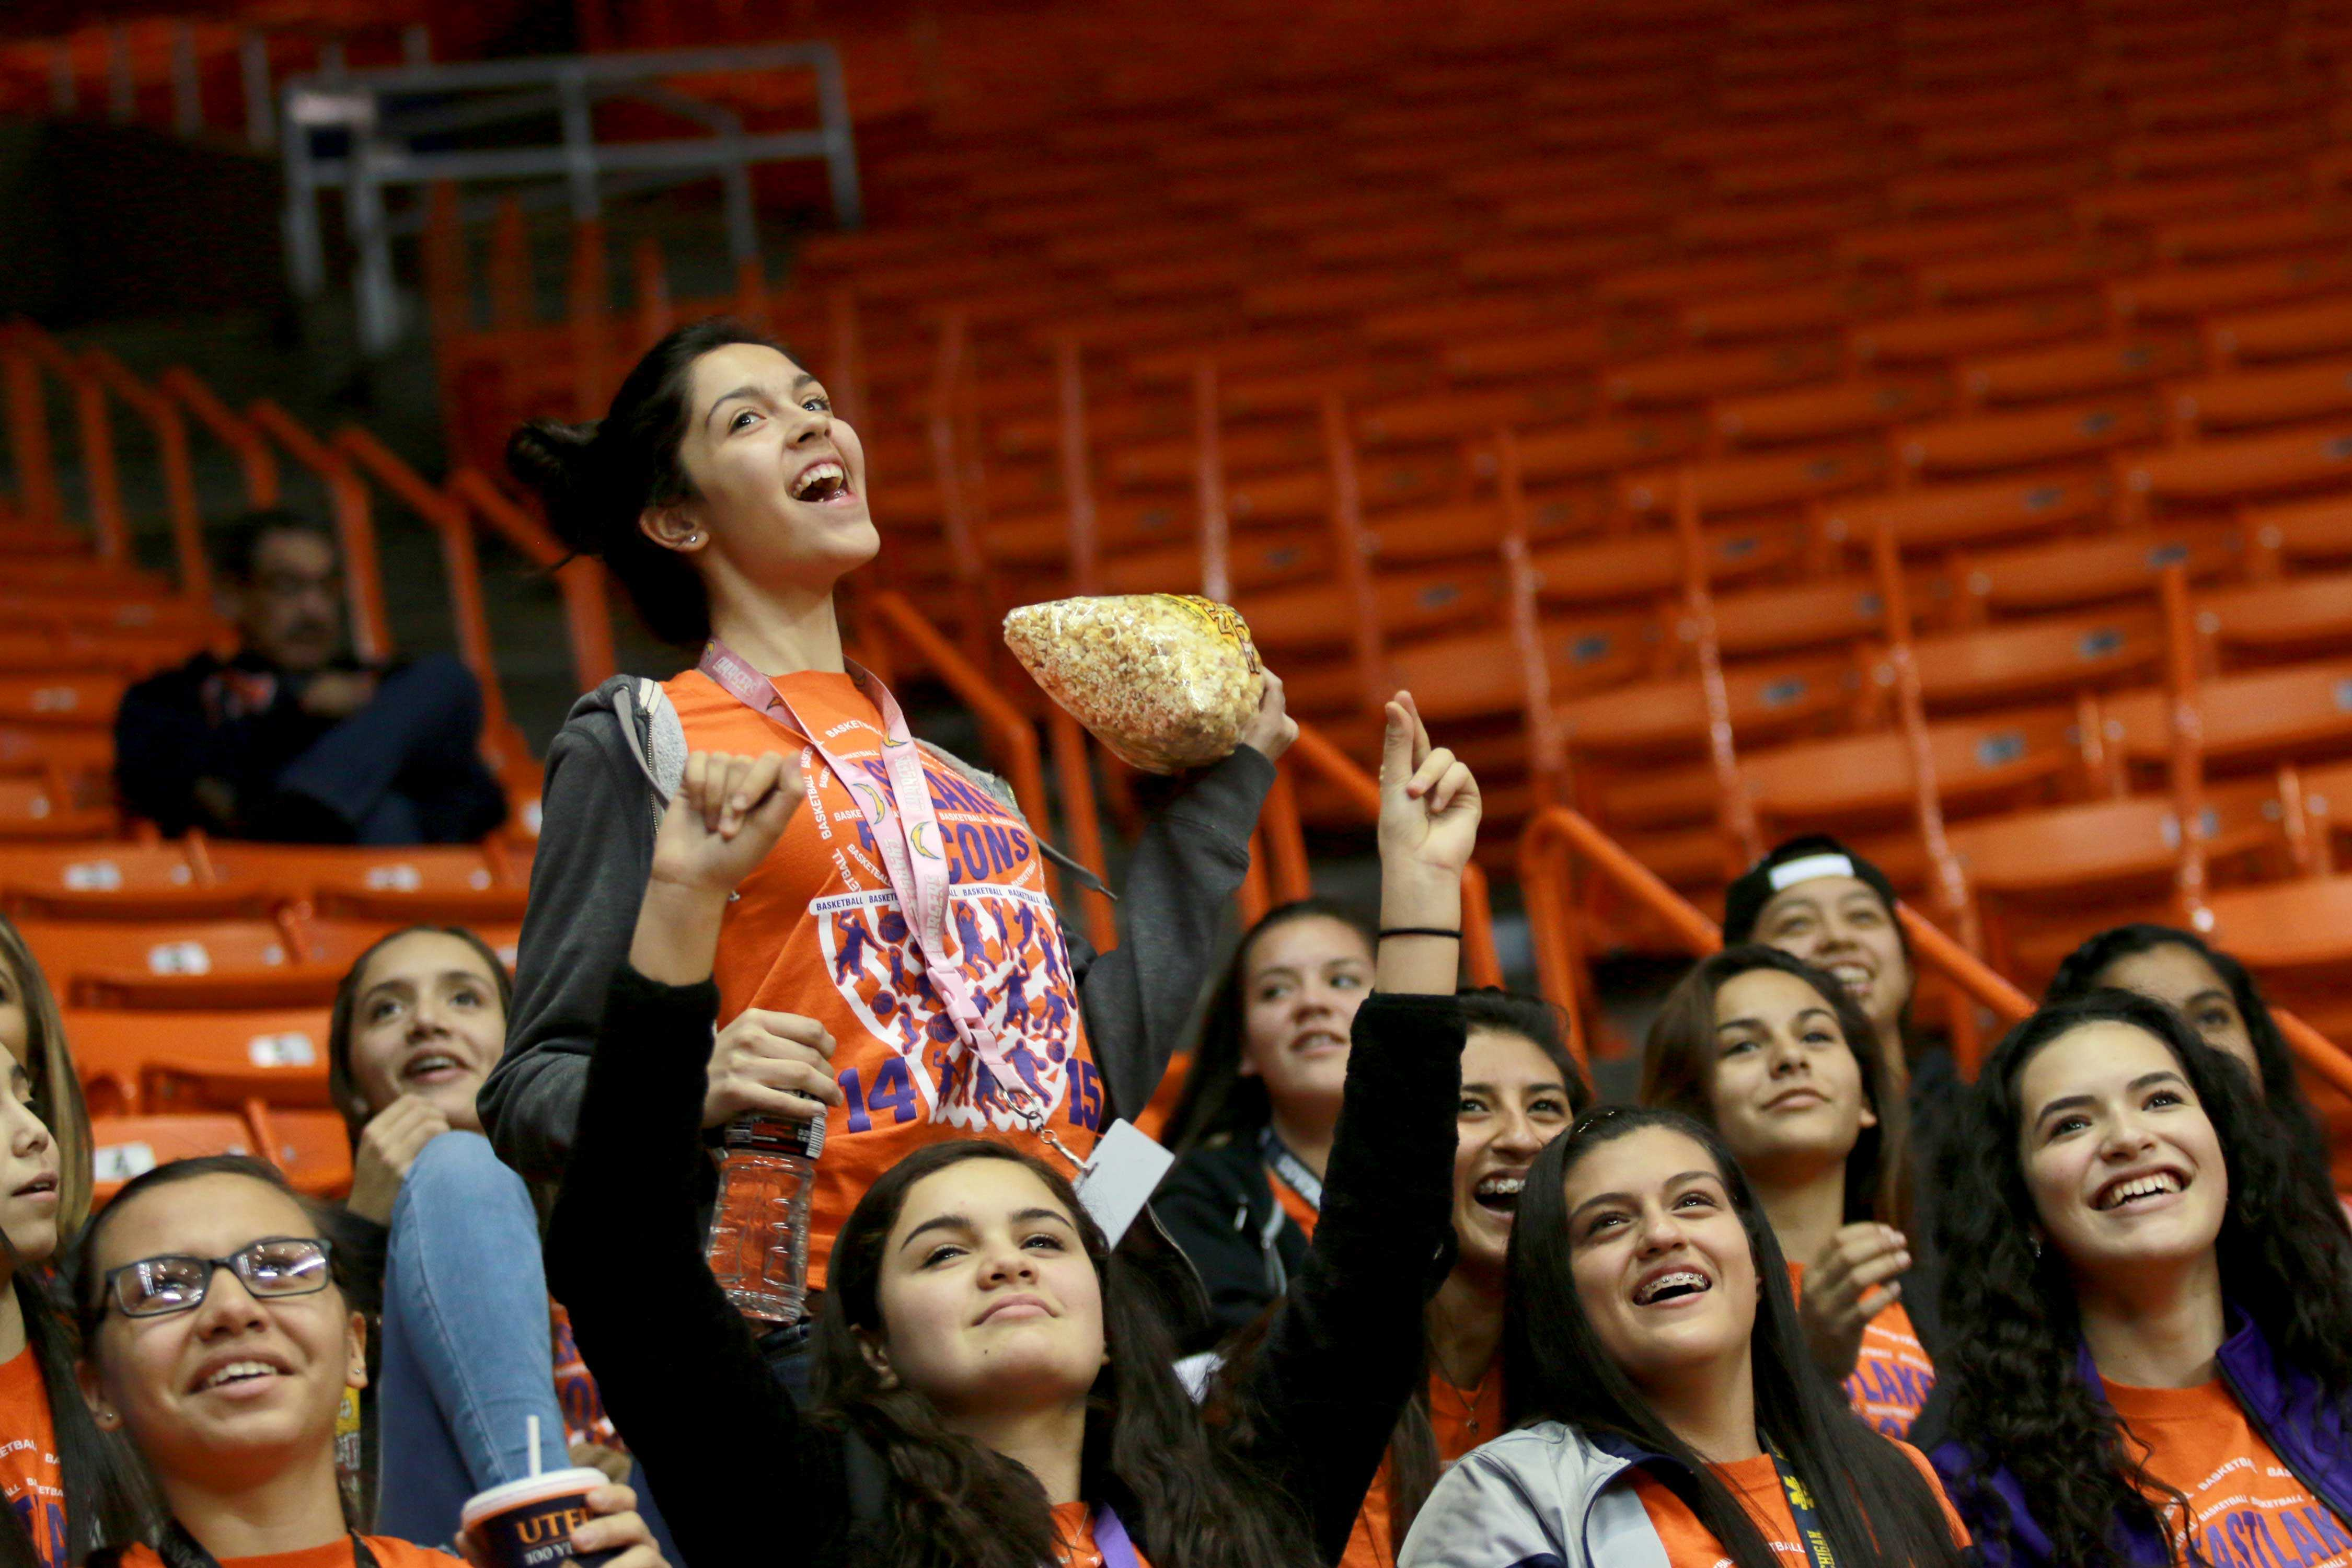 UTEP+fans+support+the+Women%27s+basketball+team.+